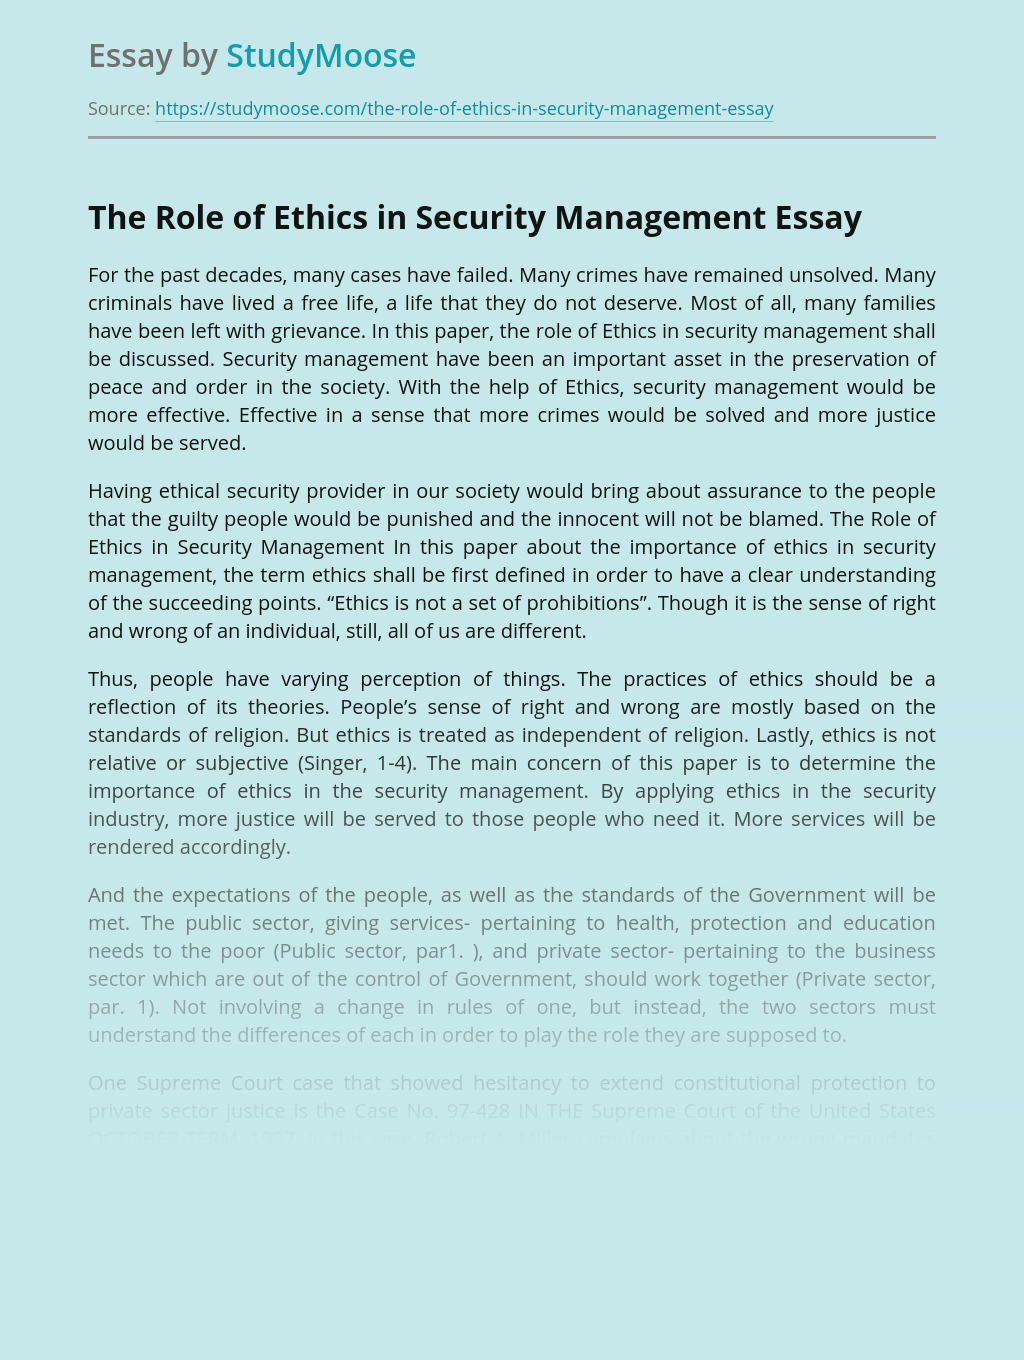 The Role of Ethics in Security Management